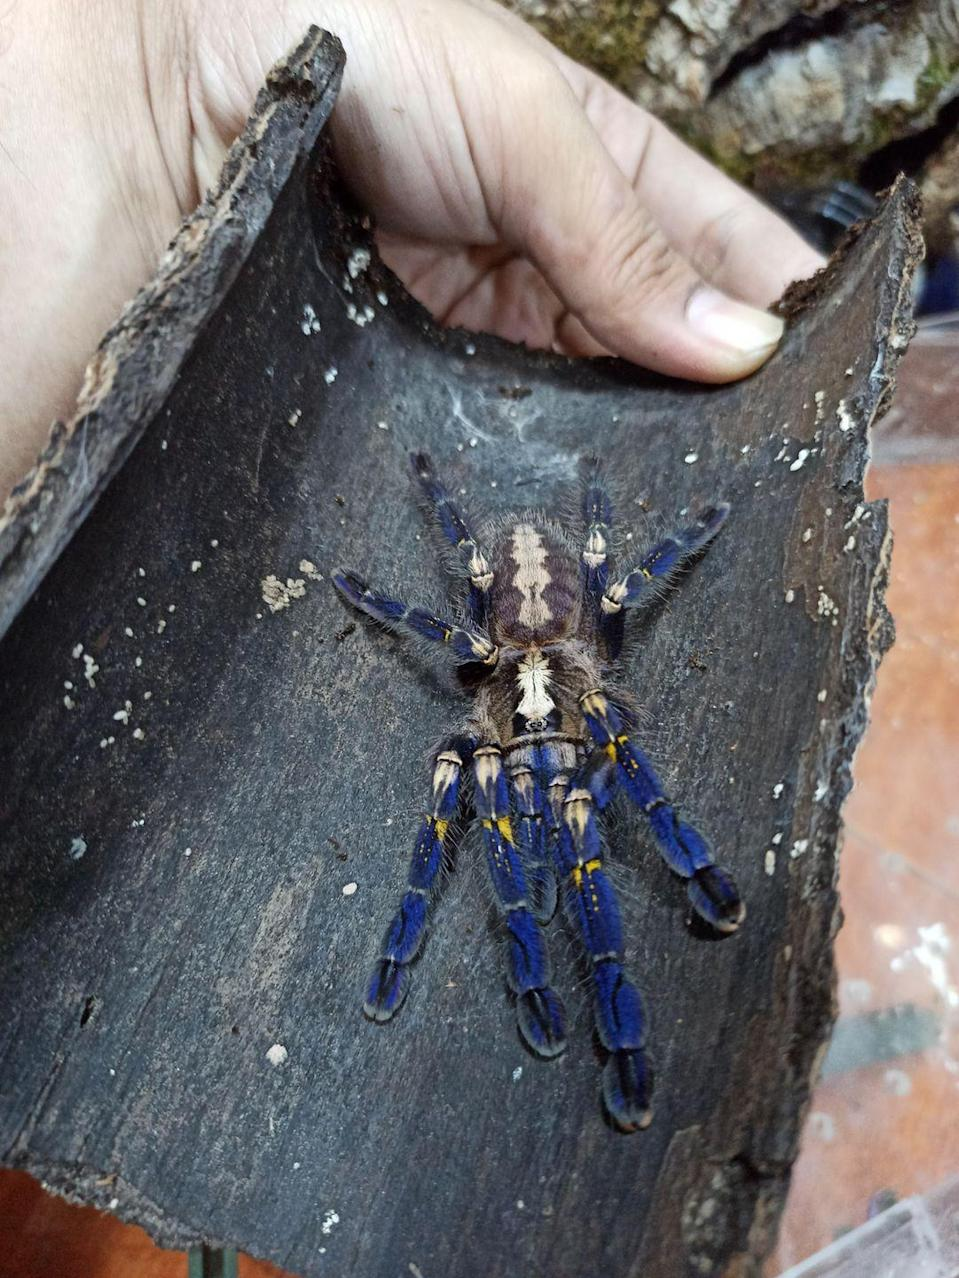 """<p><strong>What it is</strong>: <em>Poecilotheria metallica</em></p><p><strong>Where it's from</strong>: India and Sri Lanka</p><p><strong>What to know</strong>: Plain old spiders might be creepy, but cobalt-blue ones are gorgeous. Their blue coloring is likely used to <a href=""""https://royalsocietypublishing.org/doi/10.1098/rspb.2020.1688"""" rel=""""nofollow noopener"""" target=""""_blank"""" data-ylk=""""slk:find mates"""" class=""""link rapid-noclick-resp"""">find mates</a>. Unfortunately, sapphire tarantulas are listed as <a href=""""https://www.iucnredlist.org/species/63563/12681959"""" rel=""""nofollow noopener"""" target=""""_blank"""" data-ylk=""""slk:critically endangered"""" class=""""link rapid-noclick-resp"""">critically endangered</a> by the International Union for Conservation of Nature due to hunting and loss of habitat. </p>"""